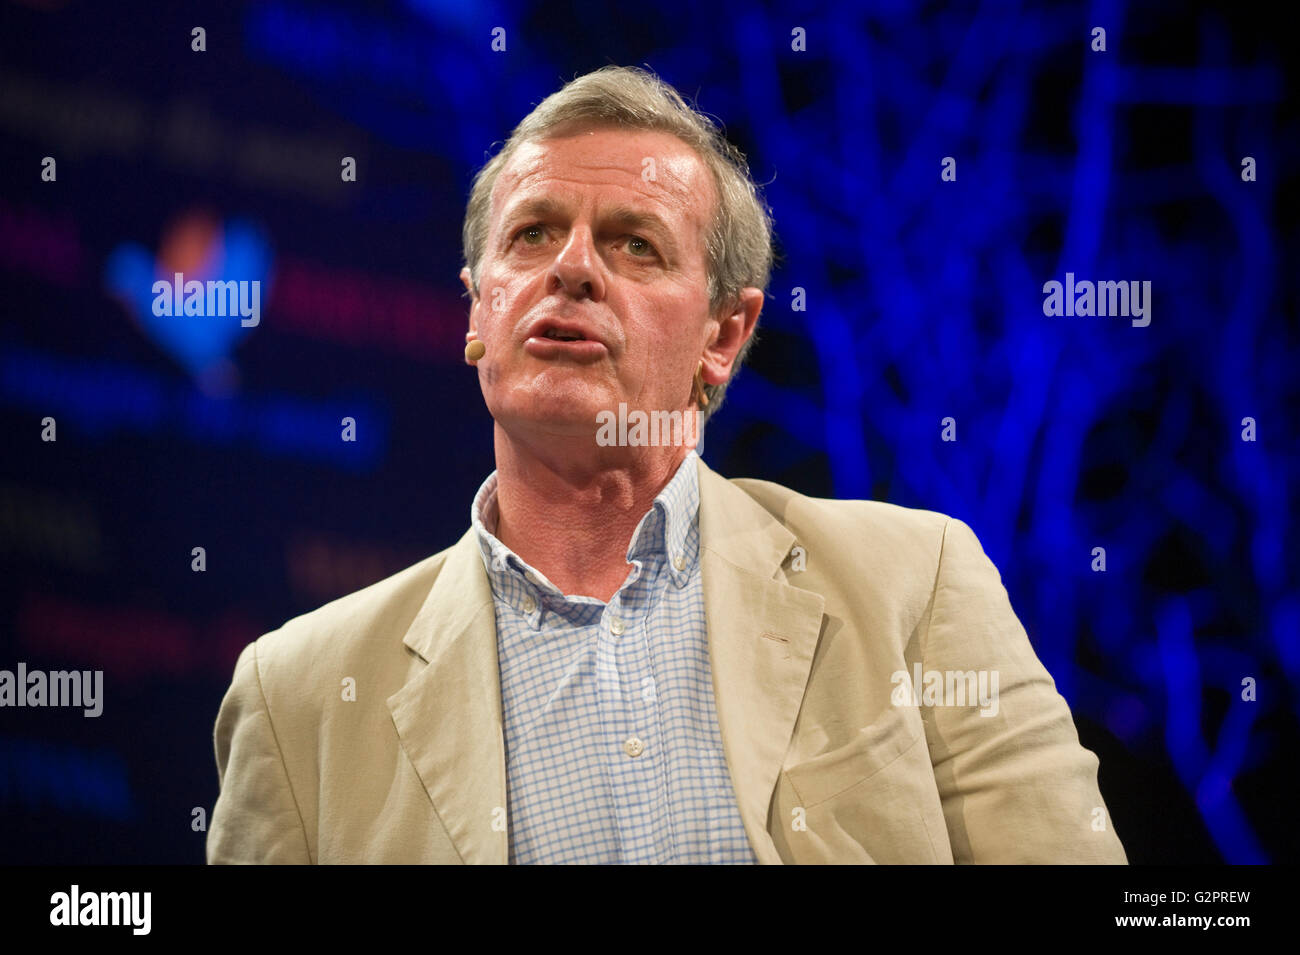 Hay-on-Wye, Wales, UK. 02nd June, 2016. General Sir Richard Shirreff former Deputy Head of NATO speaking on stage - Stock Image